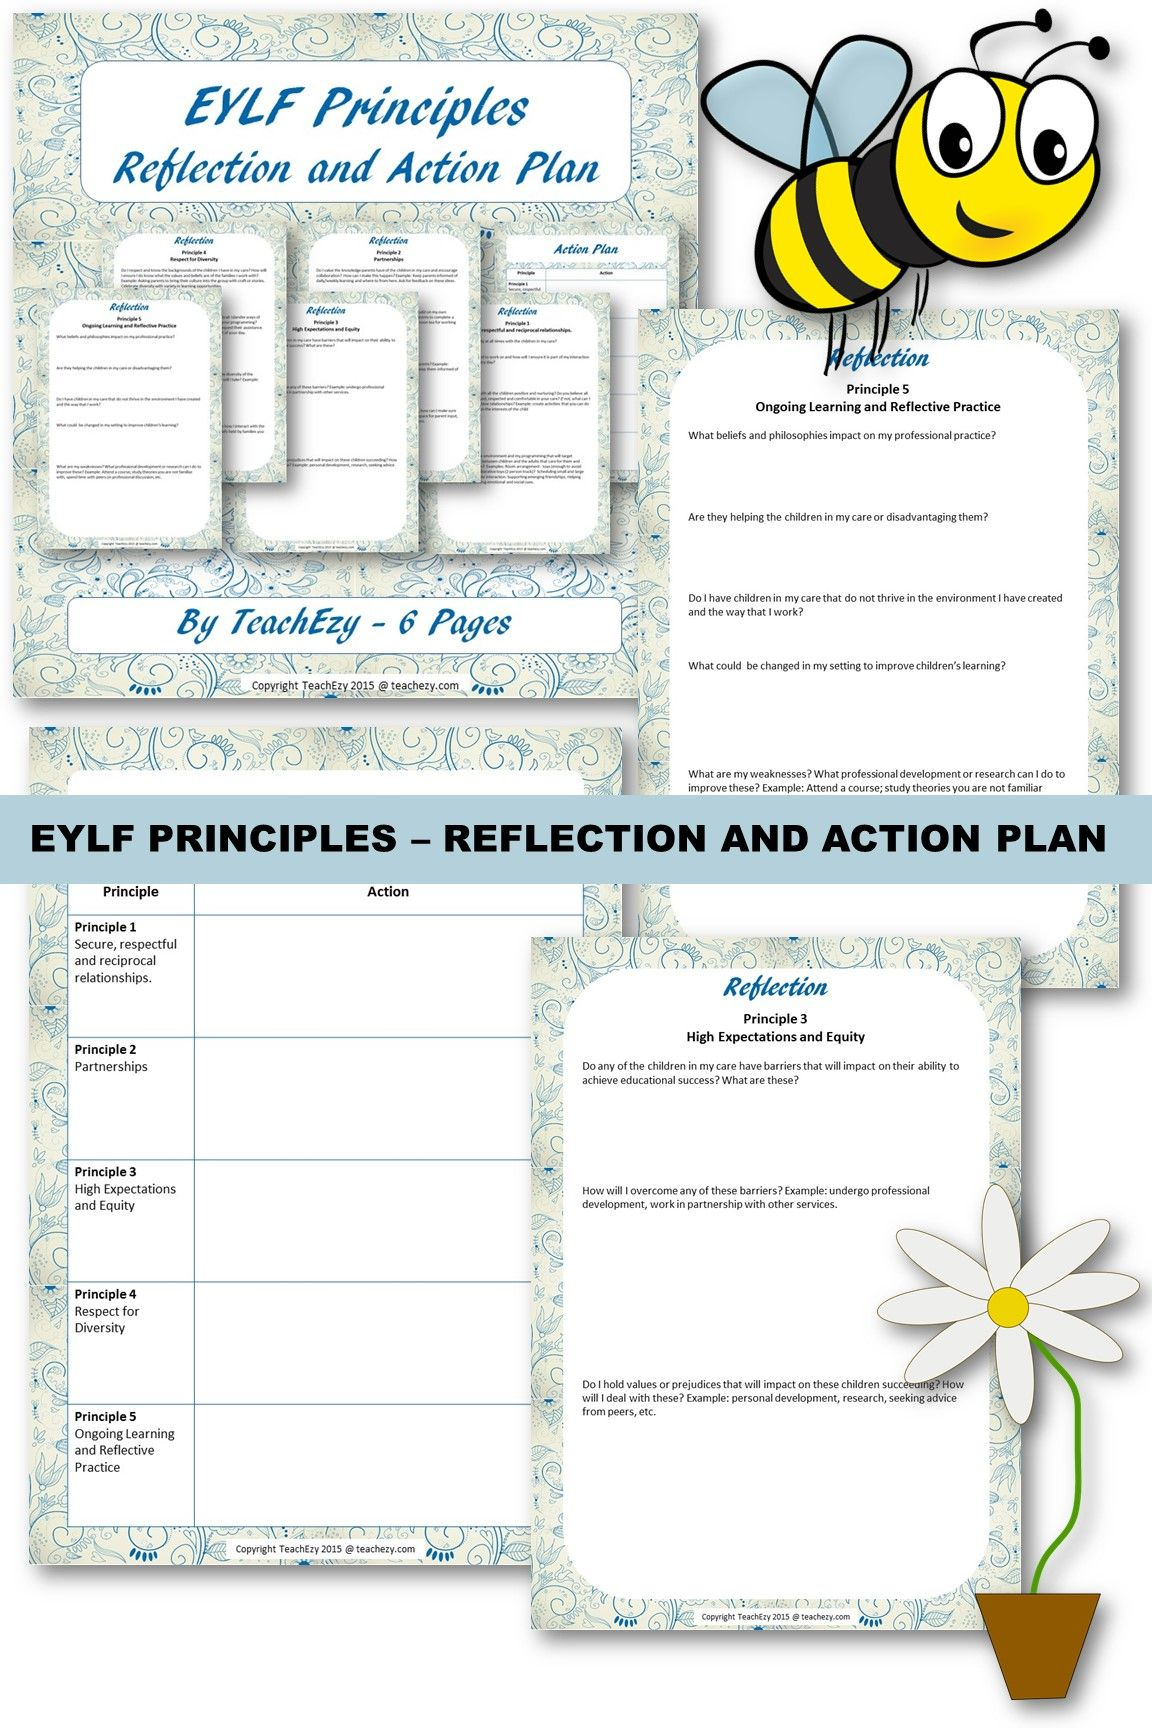 Early Childhood Teacher Resume Samples Australia Eylf Principles Reflections And Actions Plan Eylf